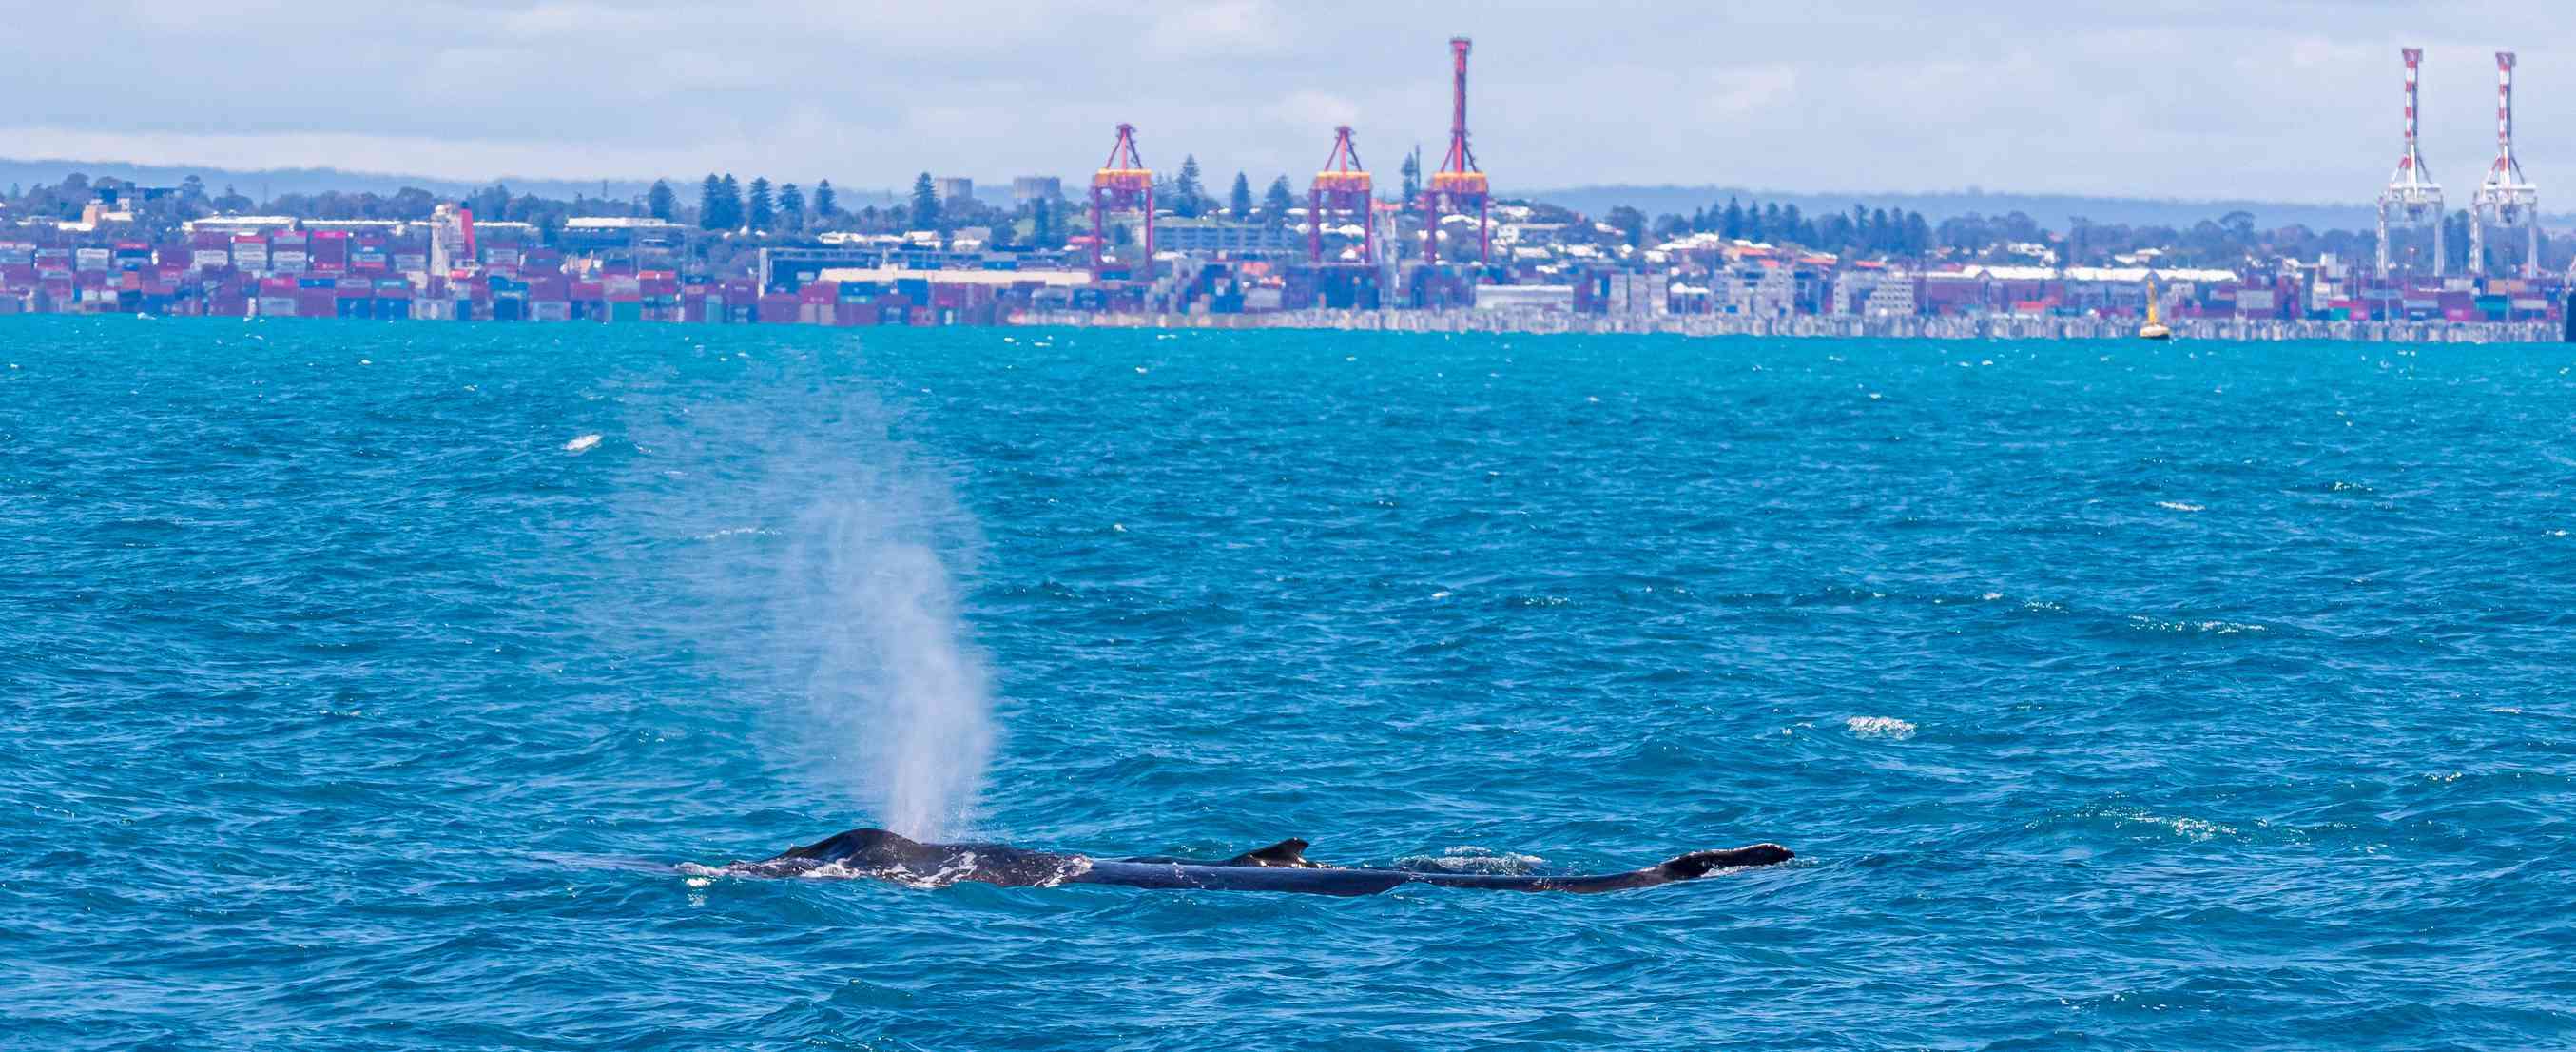 Humpback whale and her calf in the Fremantle Harbour - Western Australia